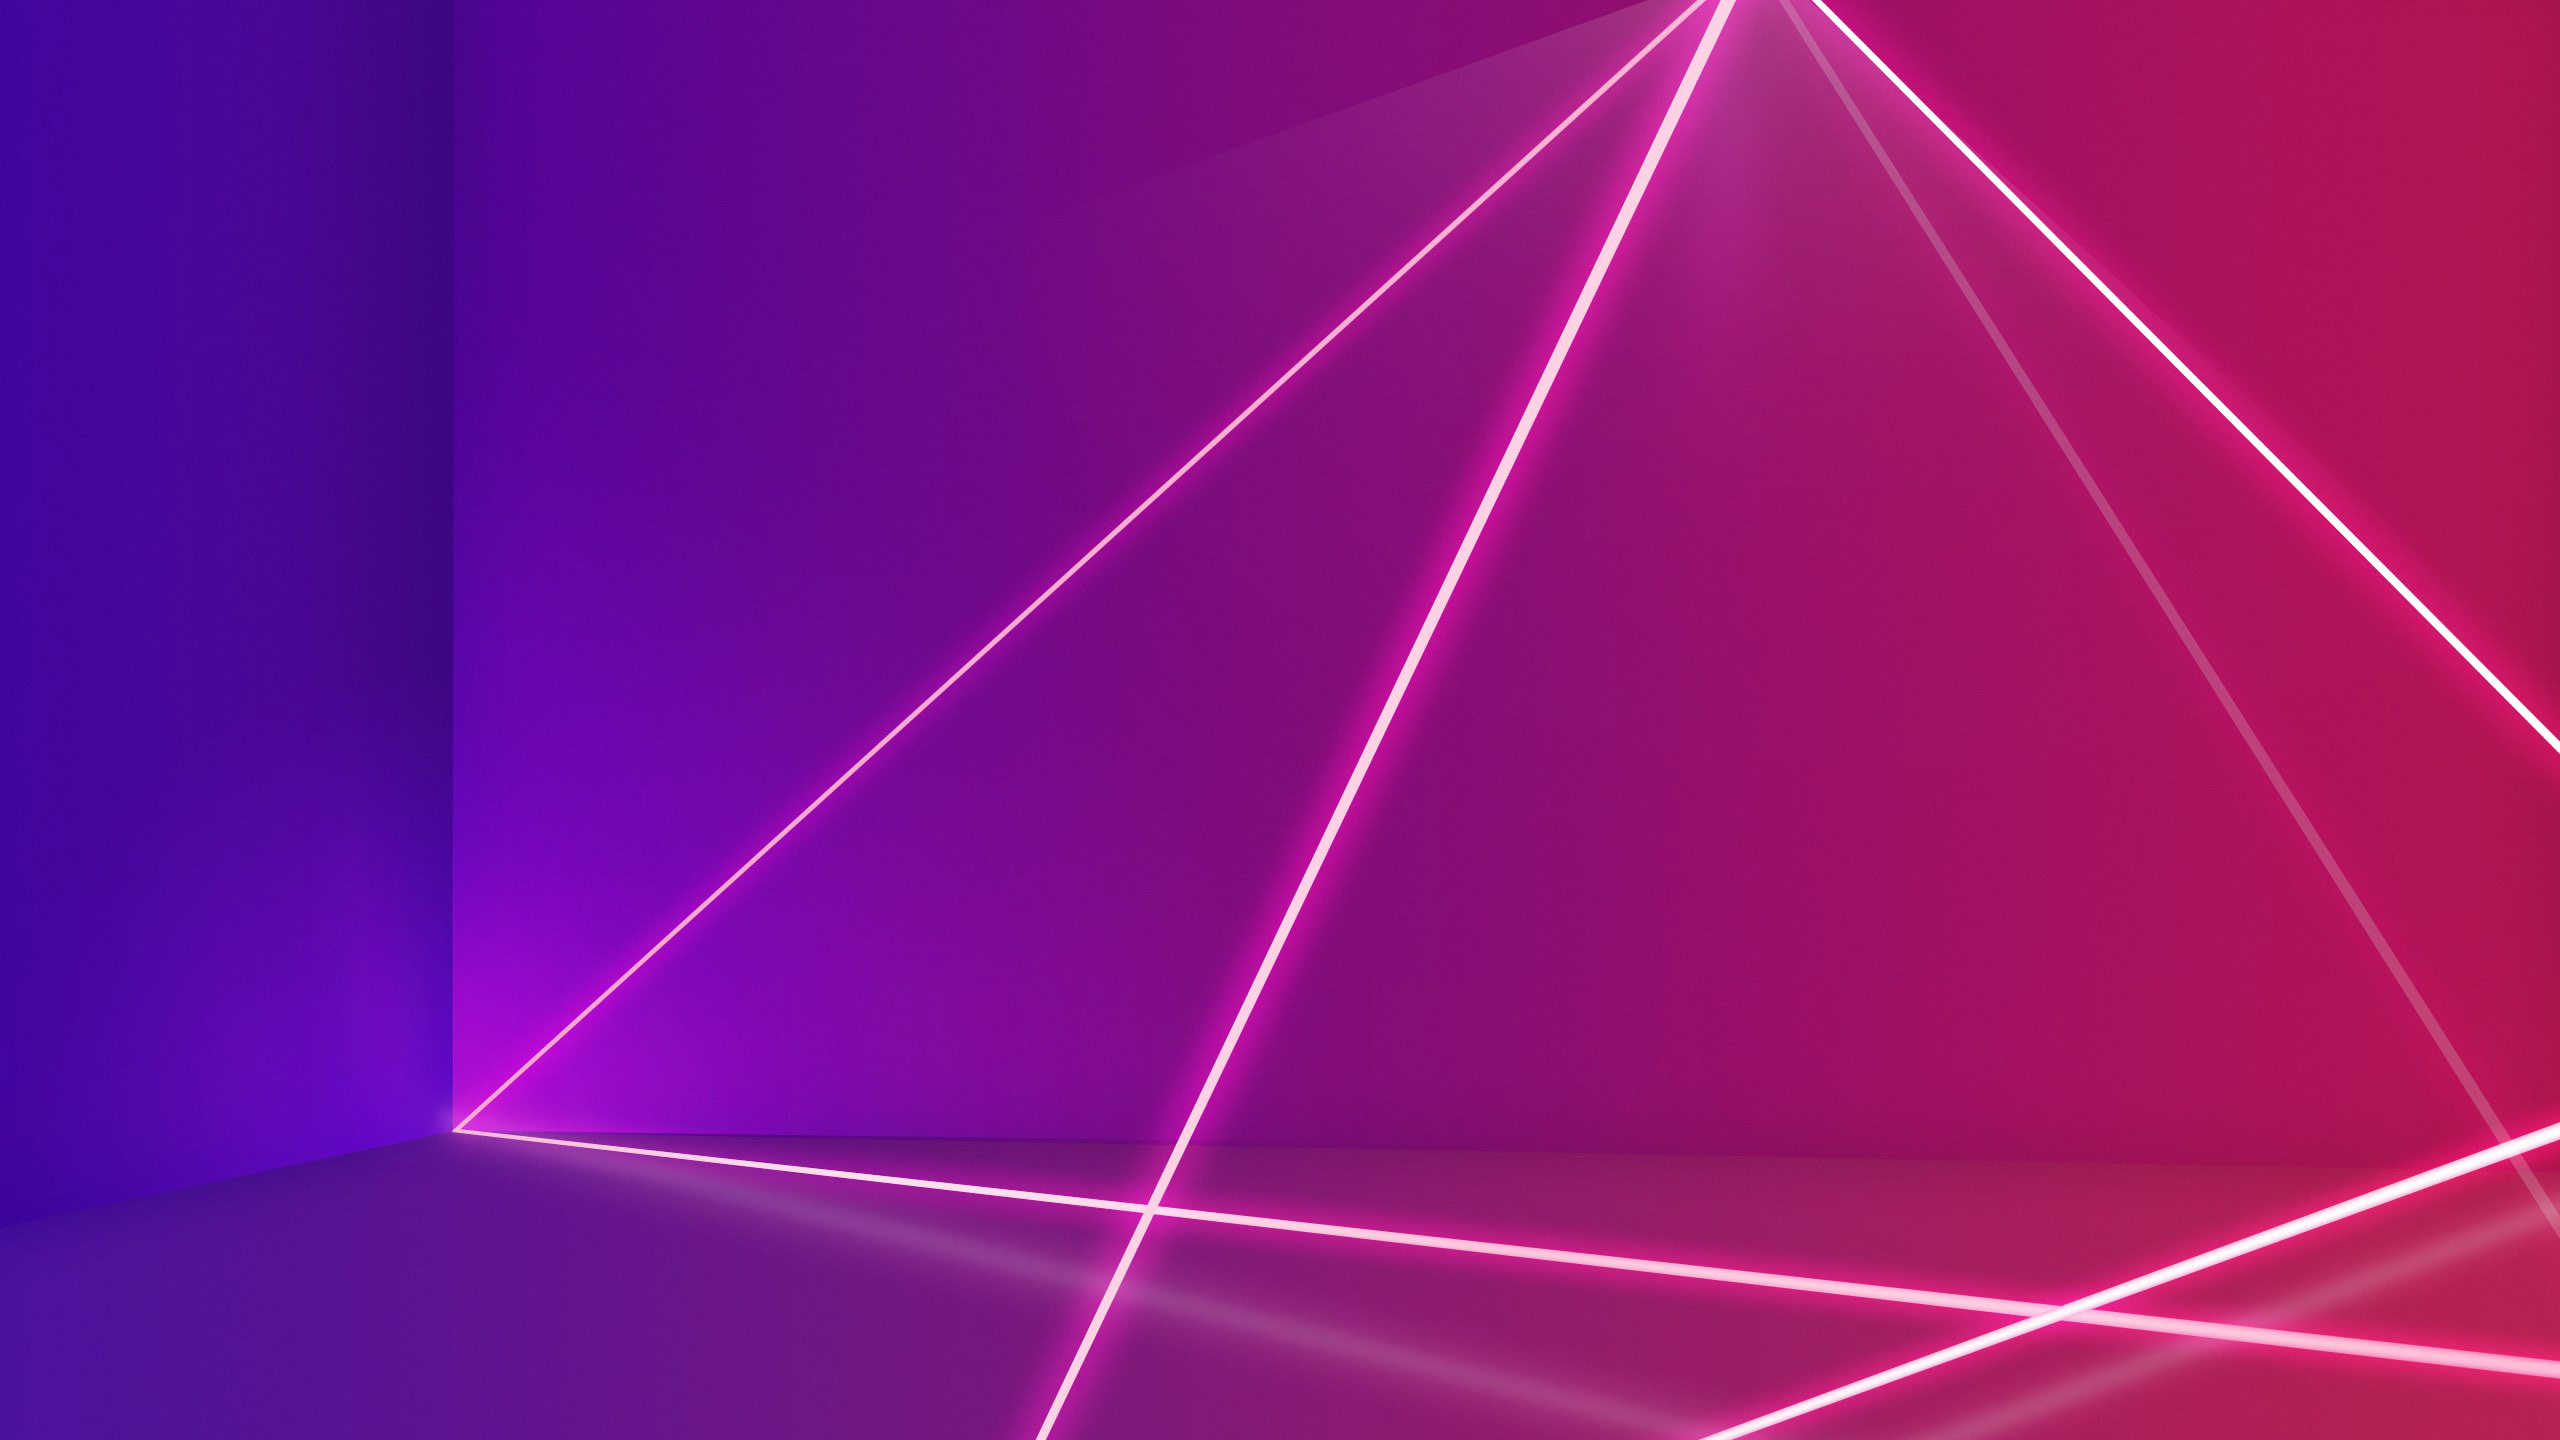 Pink Neon LG V30 Stock Wallpapers | HD